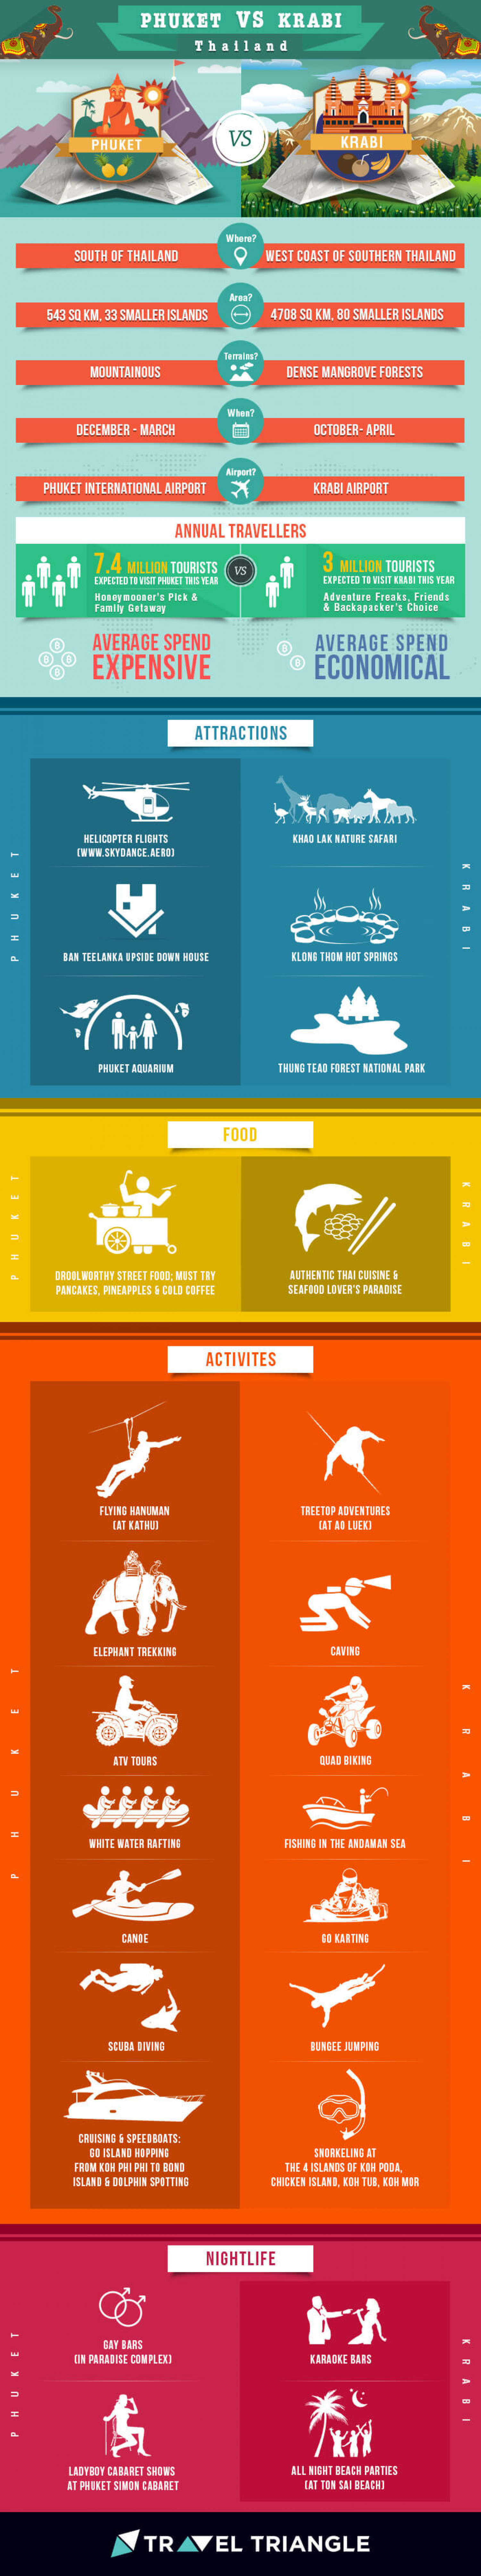 Krabi vs Phuket: Which Exotic Destinations Fits Your Holiday Plans? Infographic